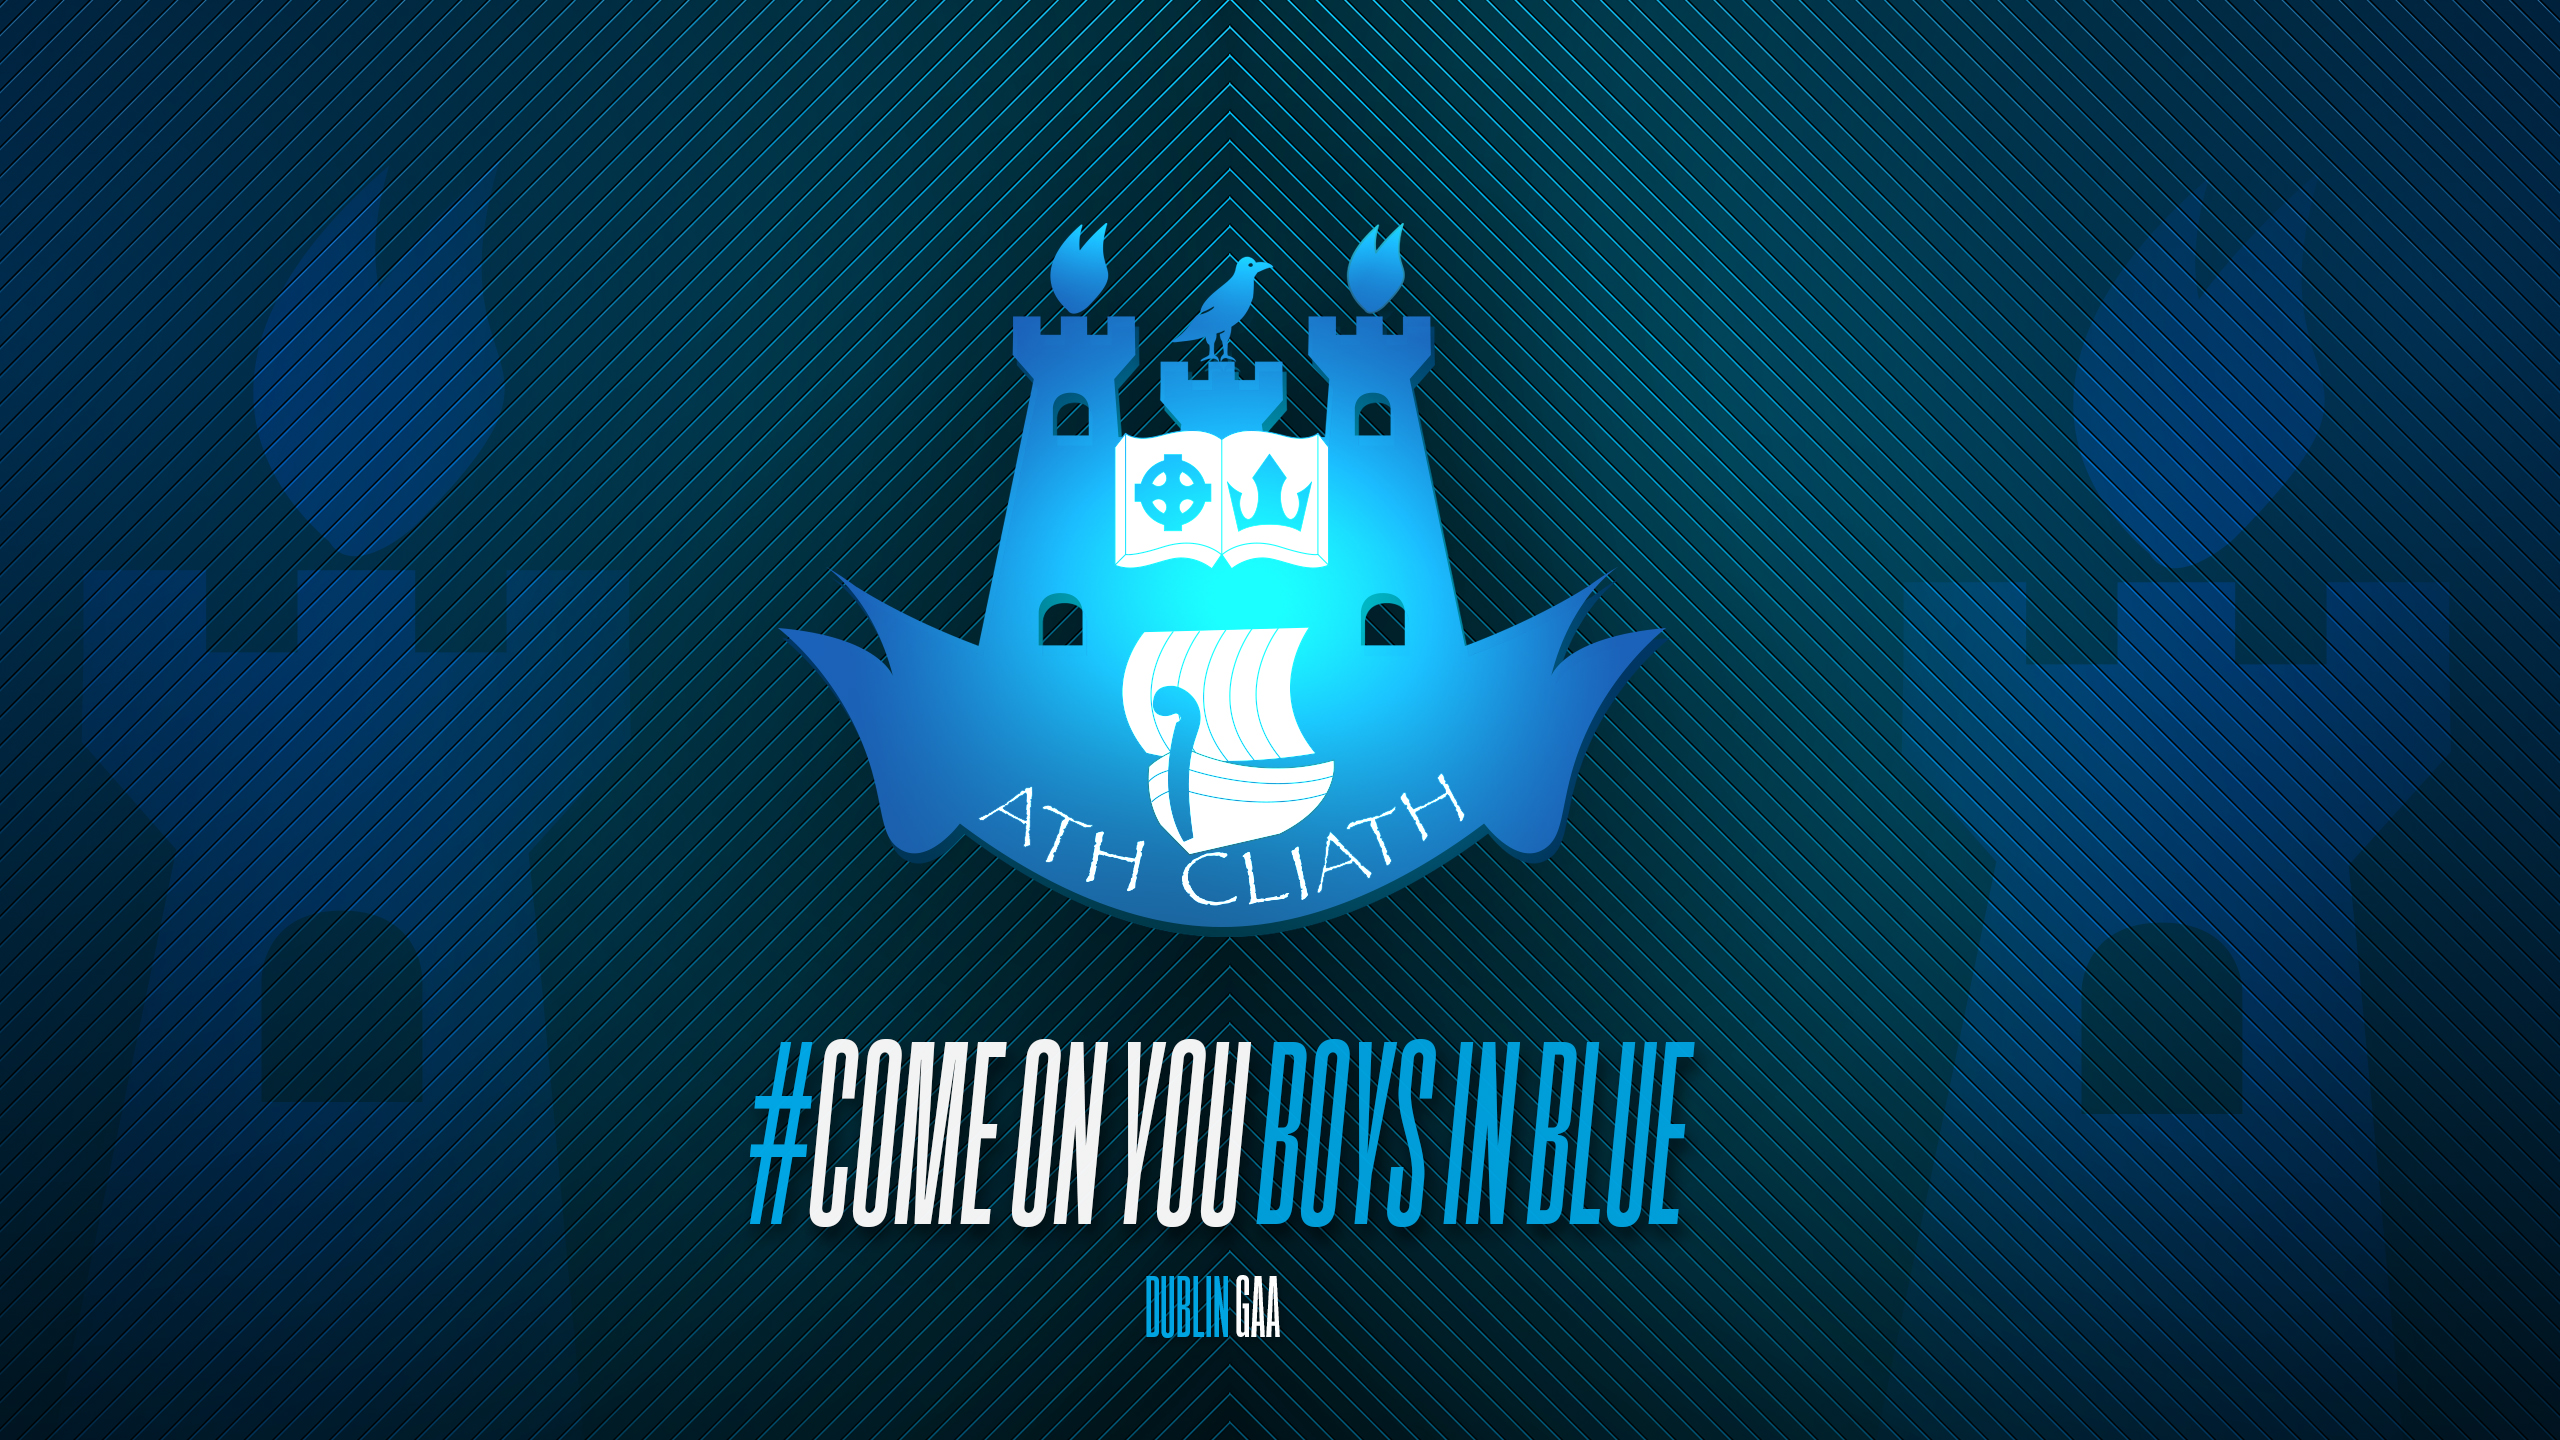 Dublin gaa wallpaper